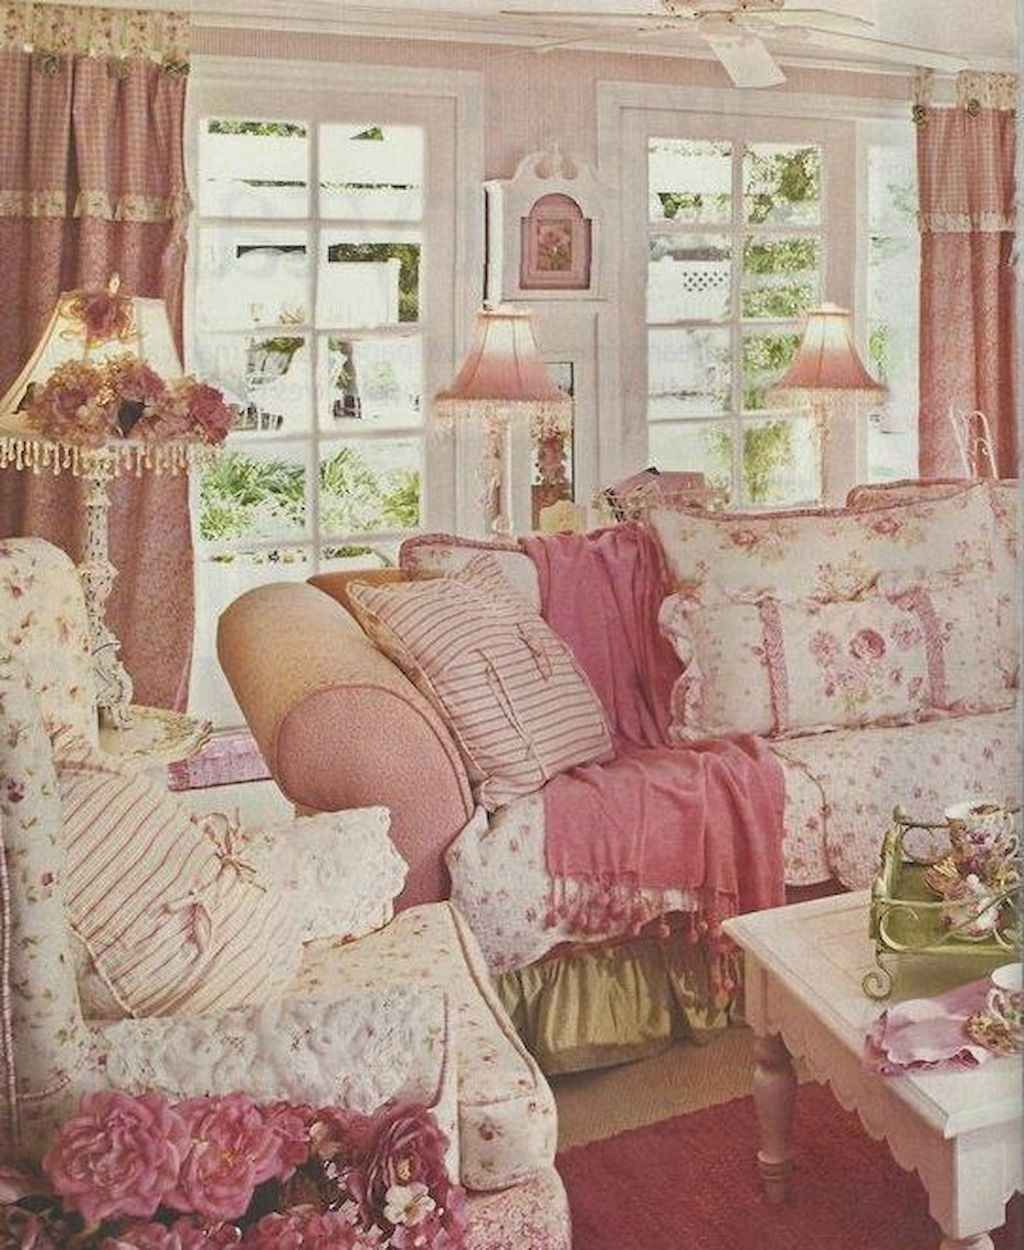 59 Fresh Shabby Chic Living Room Decor Ideas On A Budget Decoradeas In 2020 Shabby Chic Living Room Shabby Chic Decor Living Room Chic Home Decor